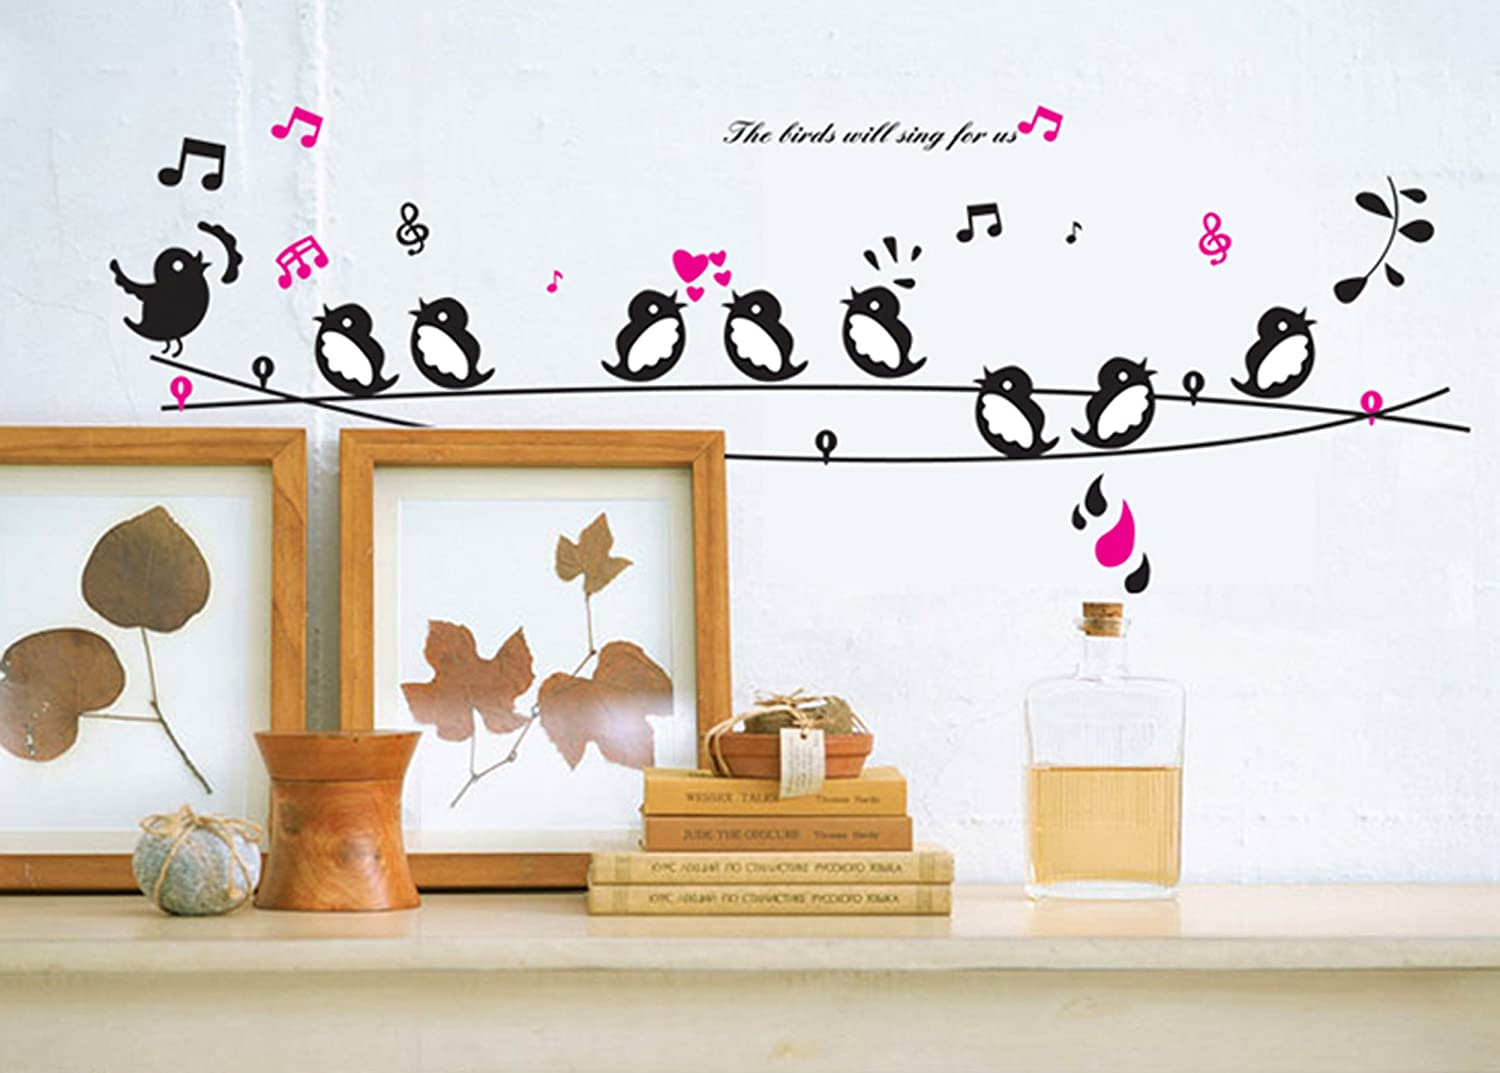 Buy uberlyfe singing birds wall sticker size 3 wall covering area buy uberlyfe singing birds wall sticker size 3 wall covering area 58cm x 160cm ws 735 online at low prices in india amazon amipublicfo Images